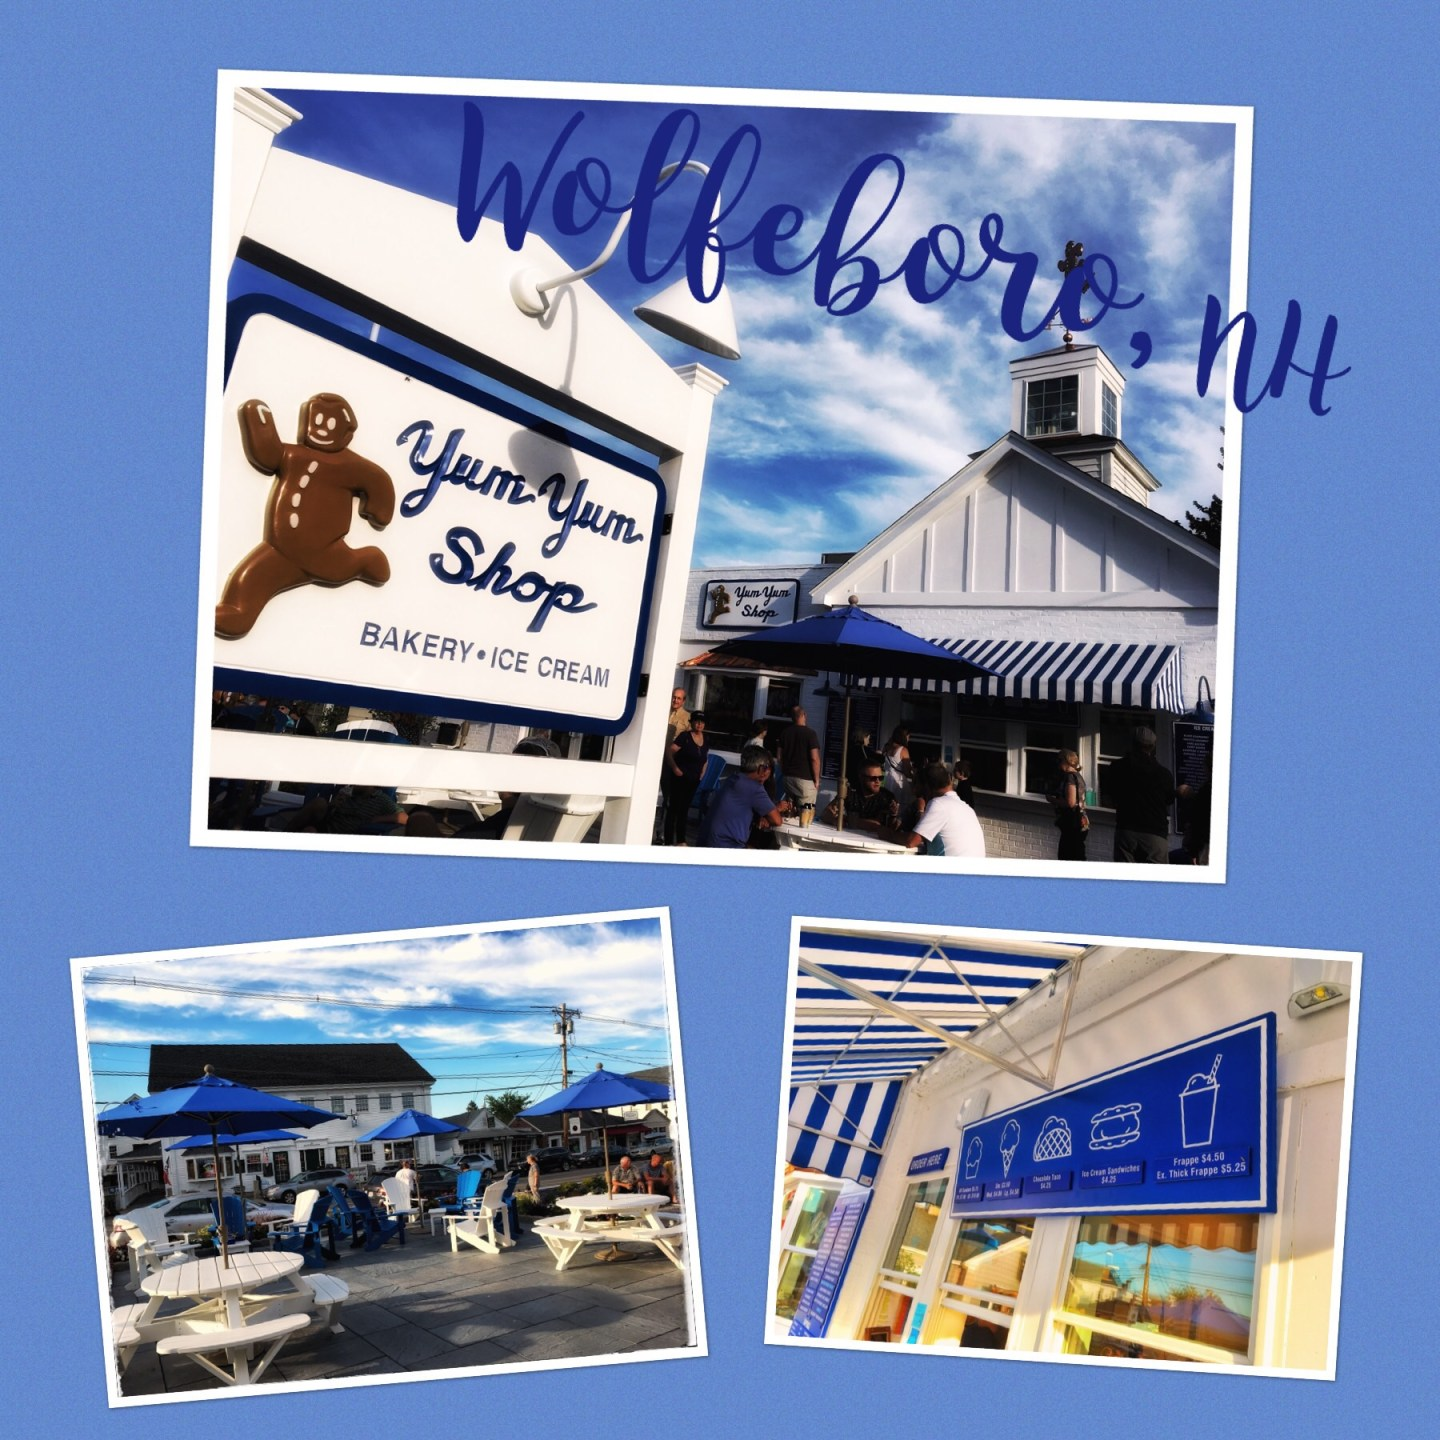 Wolfeboro, Yum Yum Shop, Lake Winnipesaukee tour